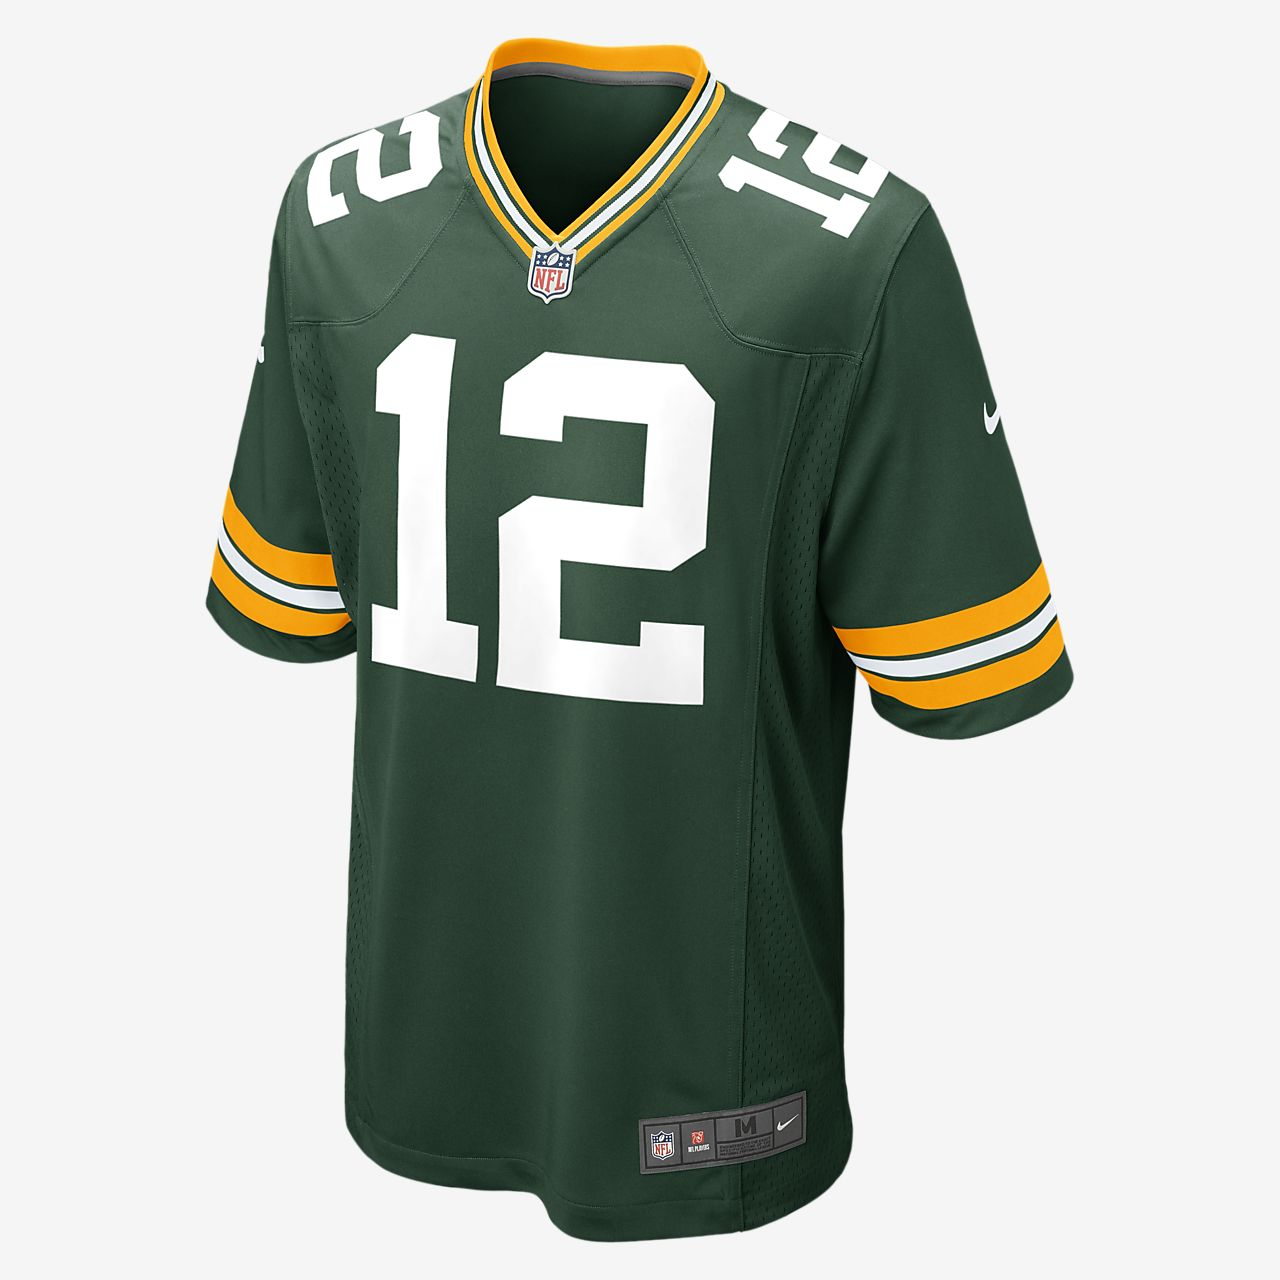 NFL Green Bay Packers (Aaron Rodgers) American football-thuiswedstrijdjersey heren